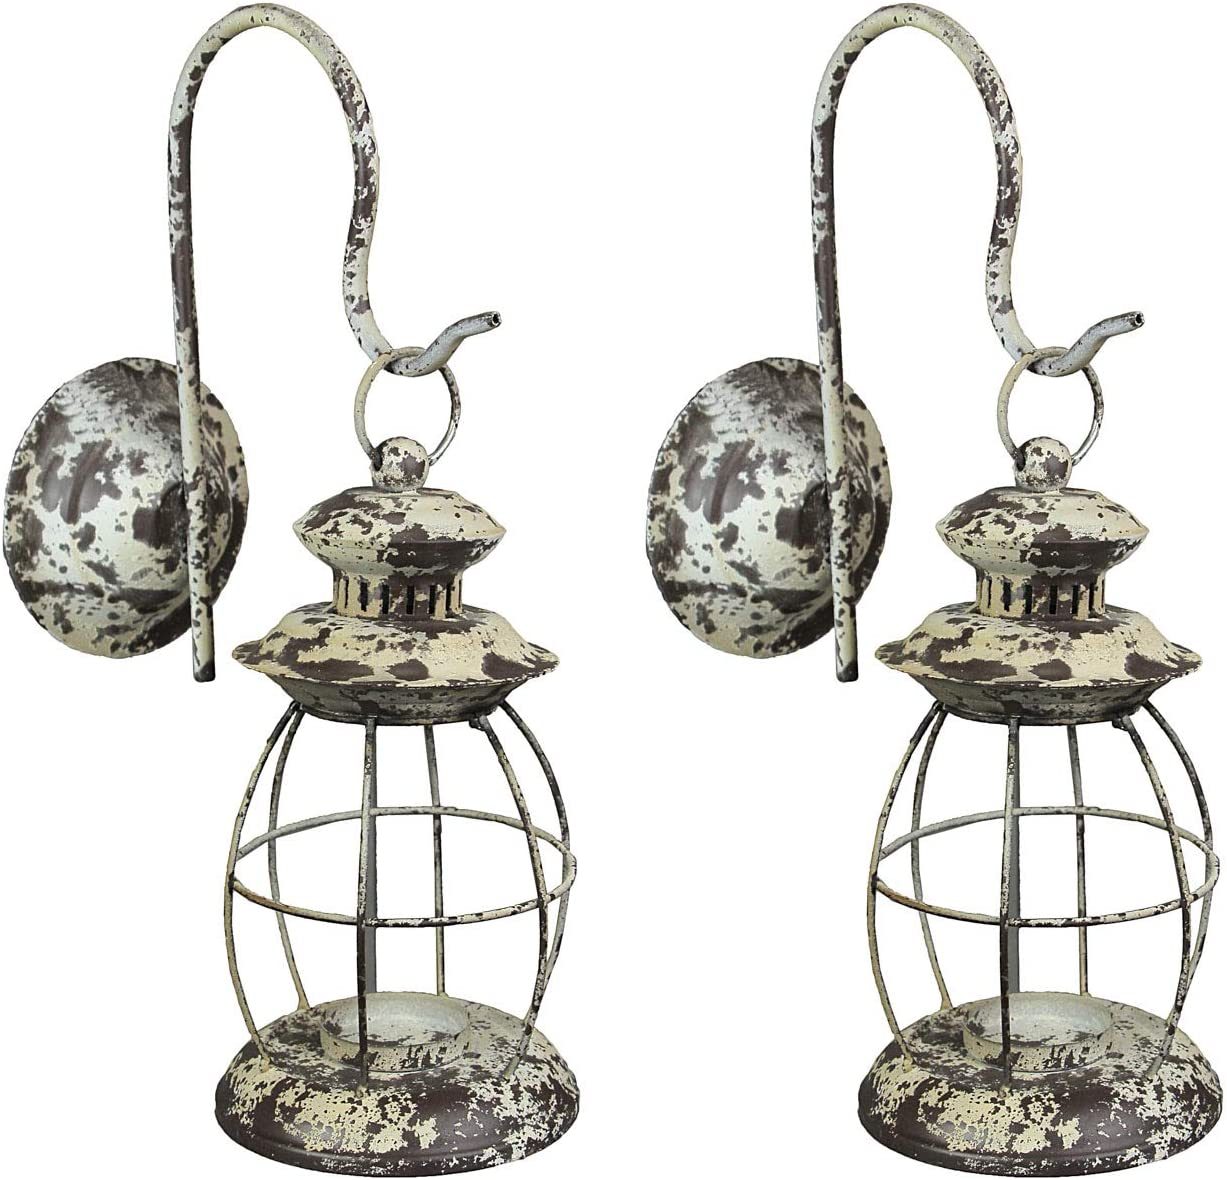 Zeckos Set of 2 Rustic Distressed White Metal Wall Mounted Railroad Lantern Hanging Candle Sconces